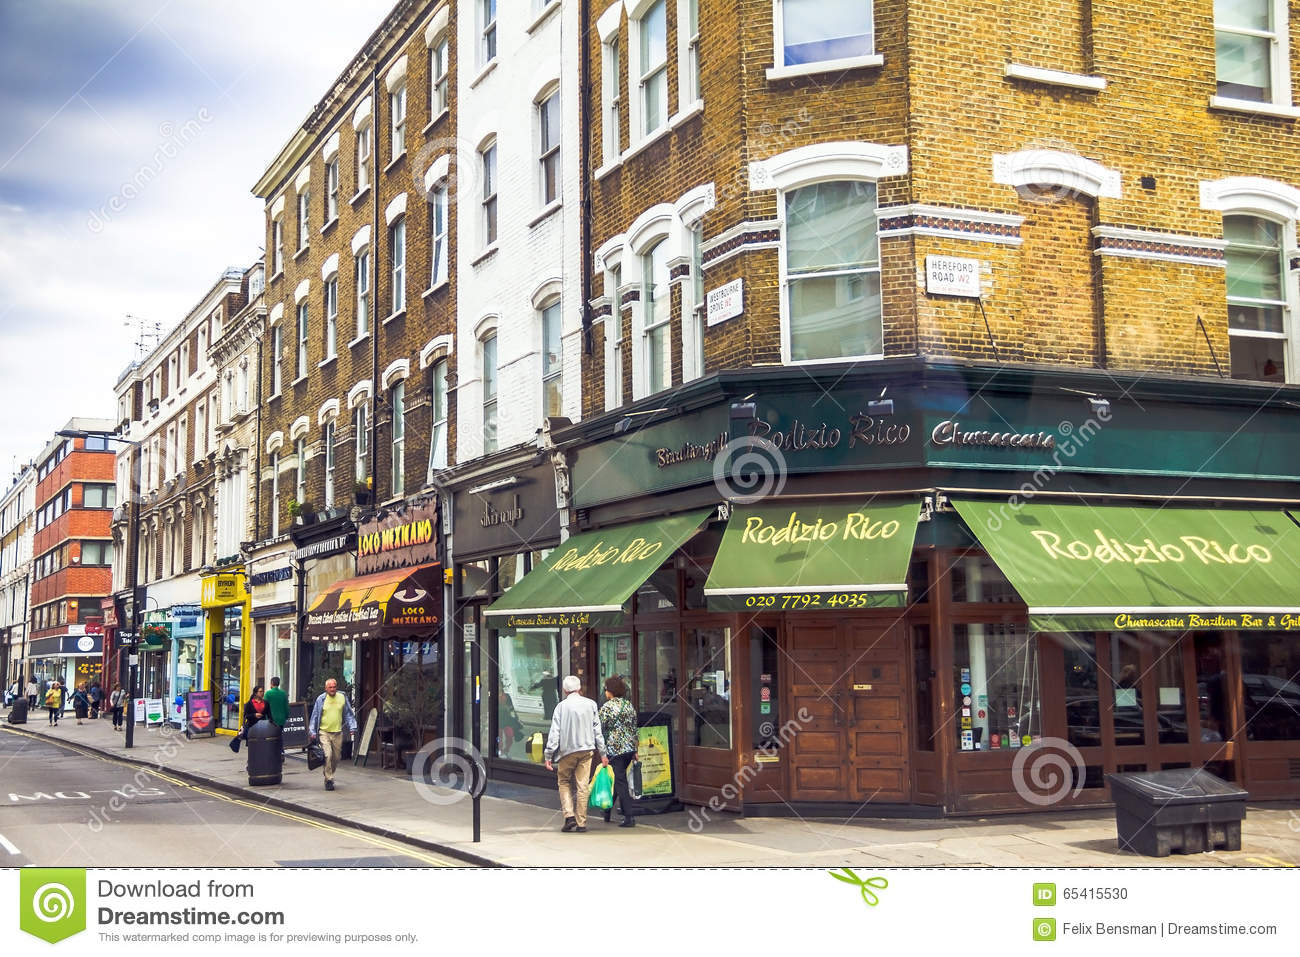 Notting Hill Ladbroke Grove westbourne grove street in notting hill gate distract at the